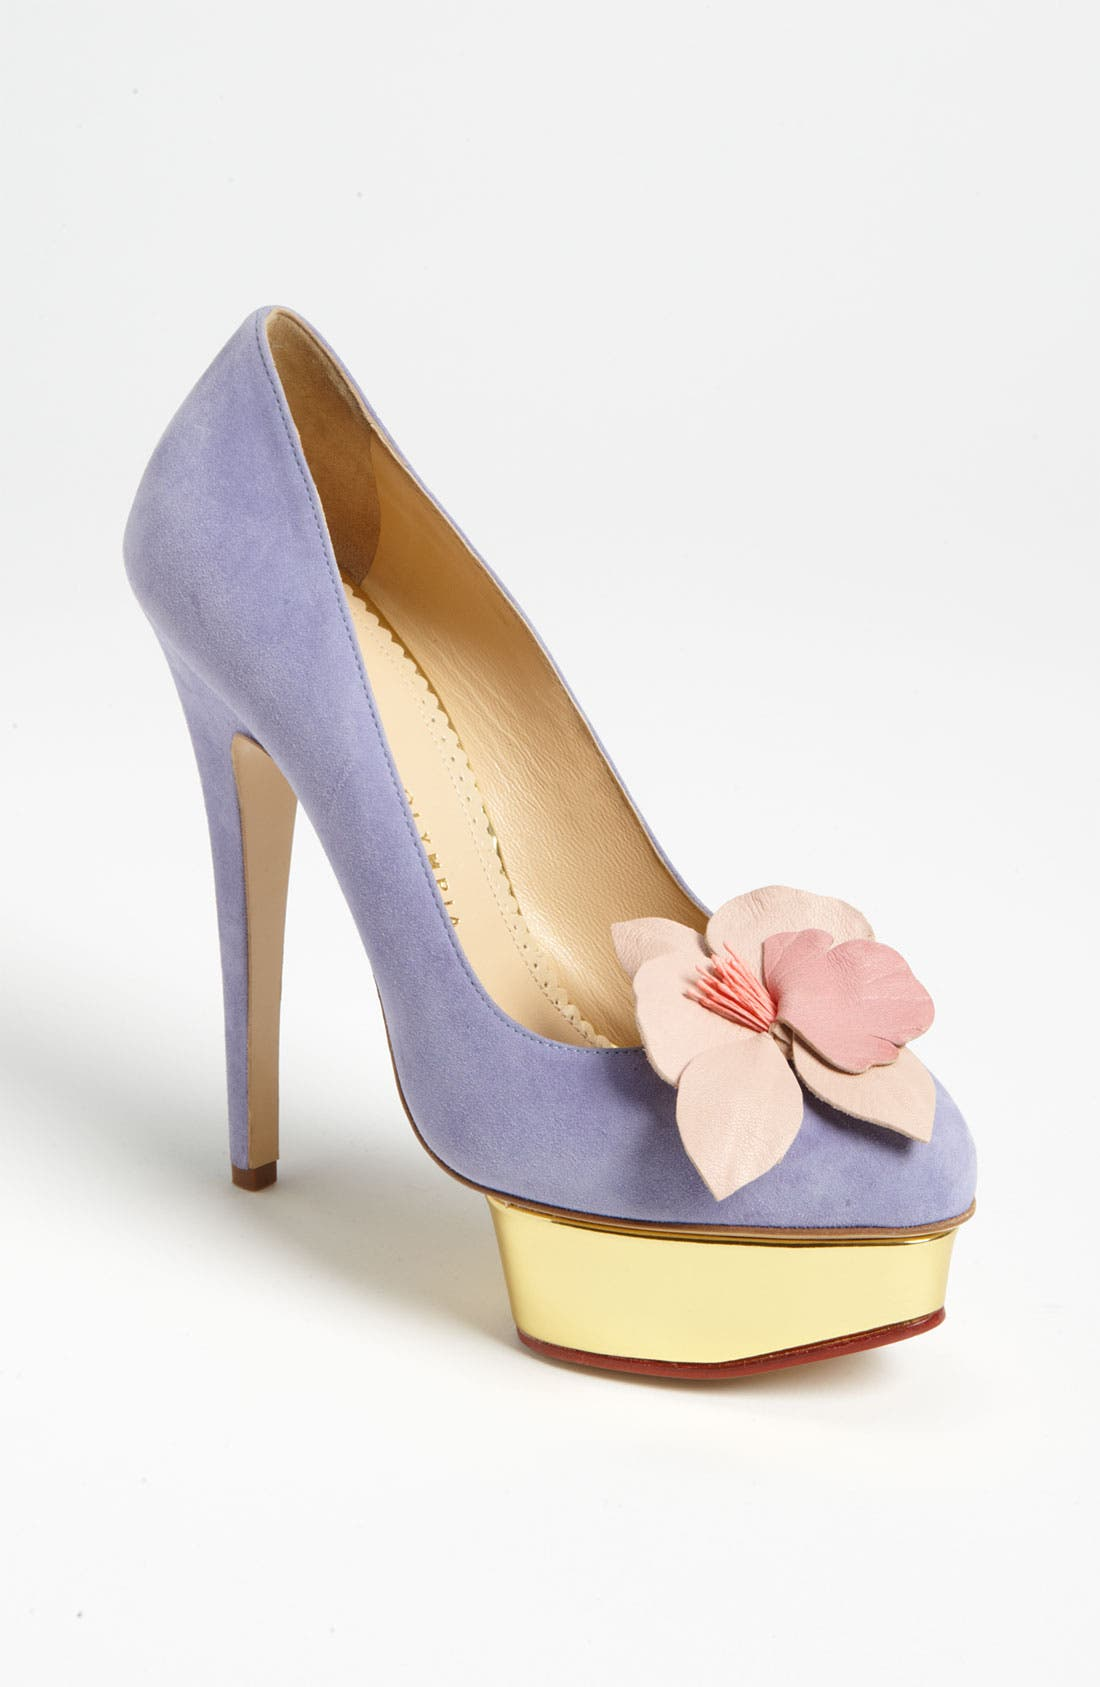 Alternate Image 1 Selected - Charlotte Olympia 'Dolly' Pump